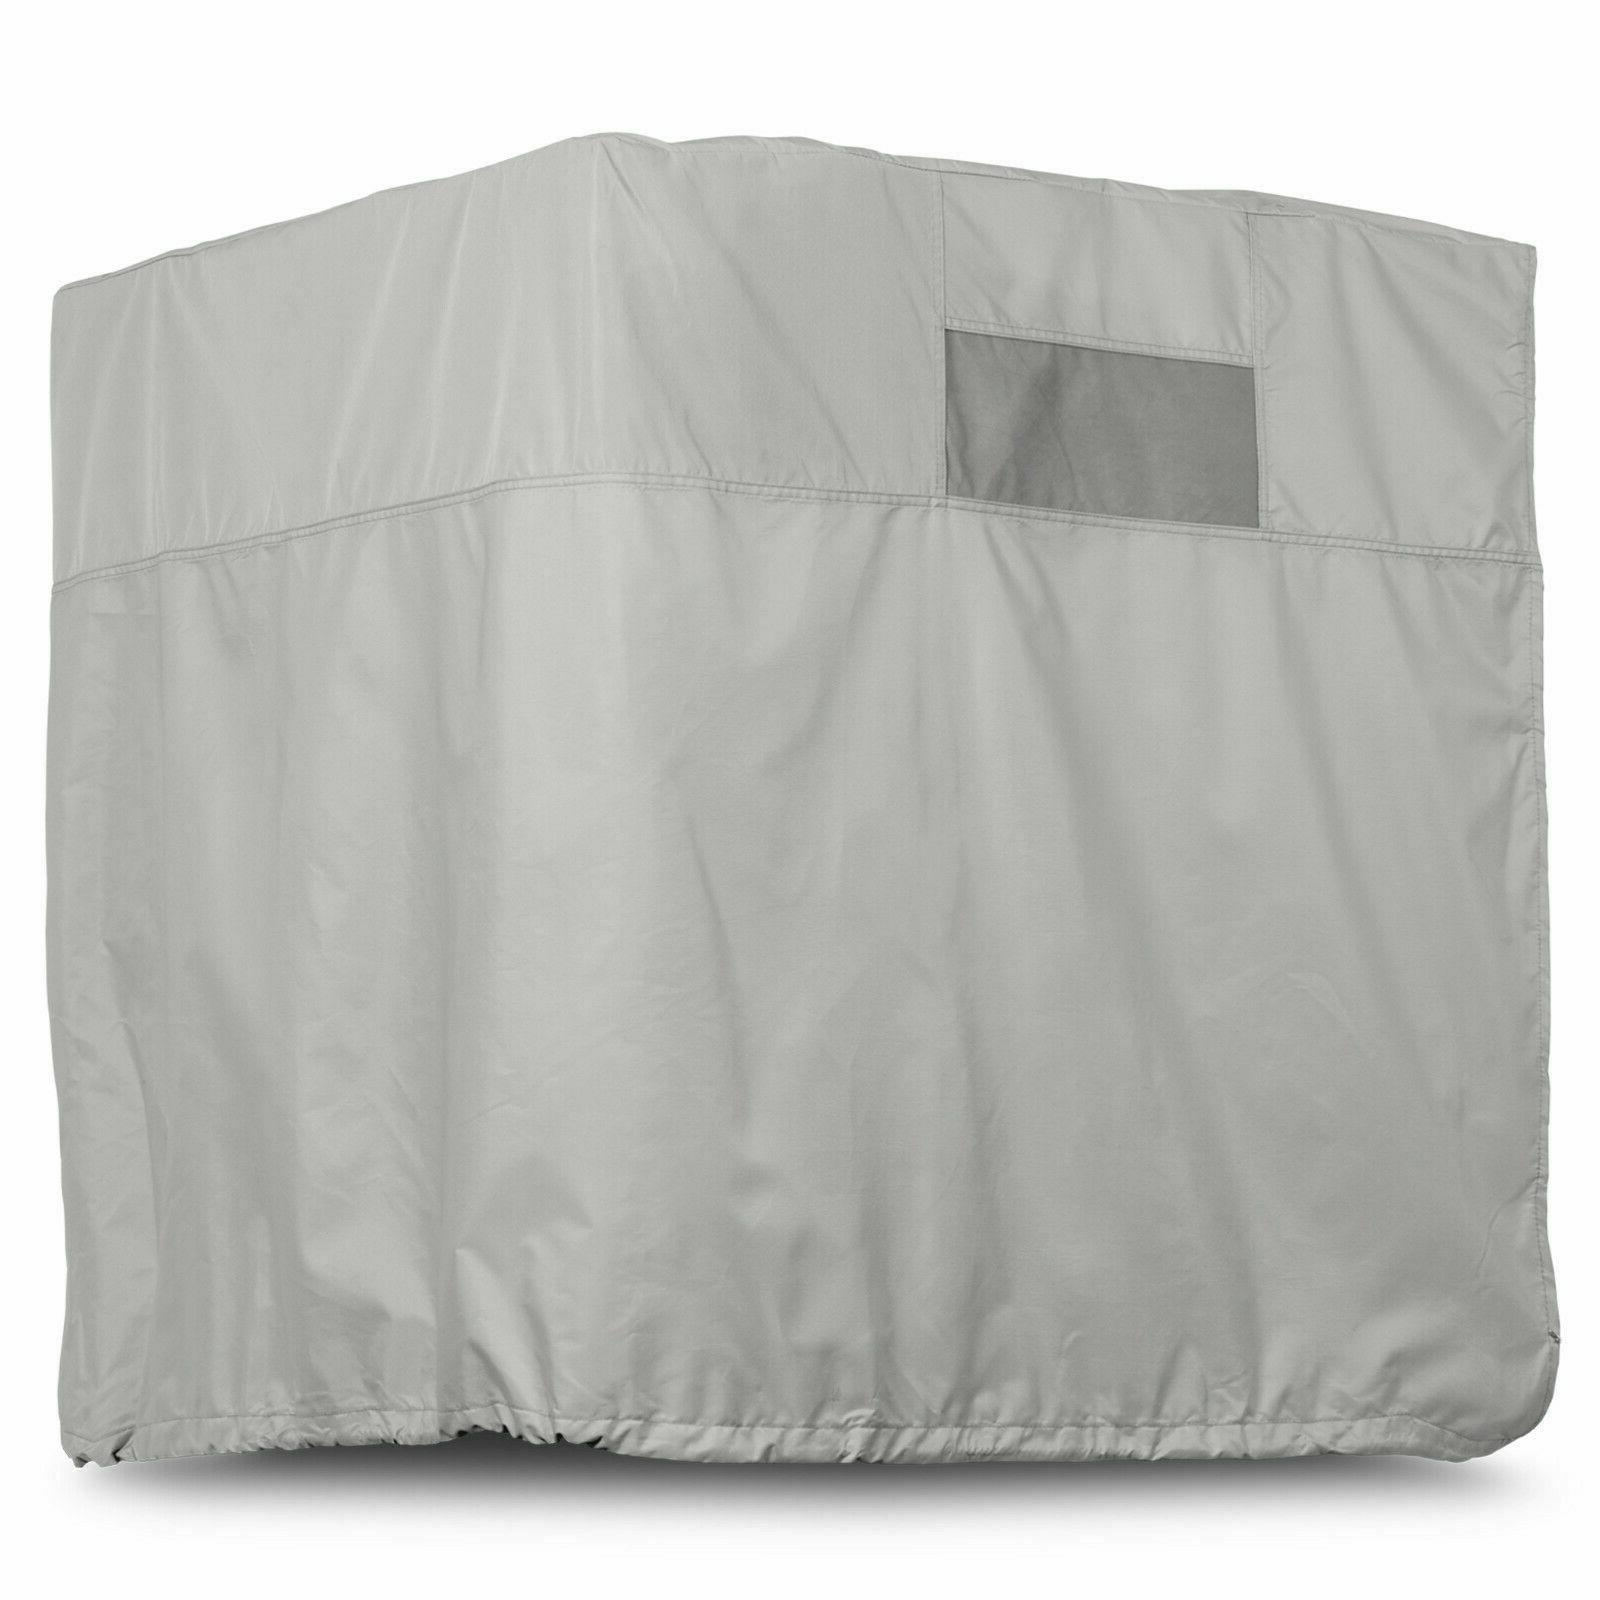 heavy duty evaporative swamp cooler cover down